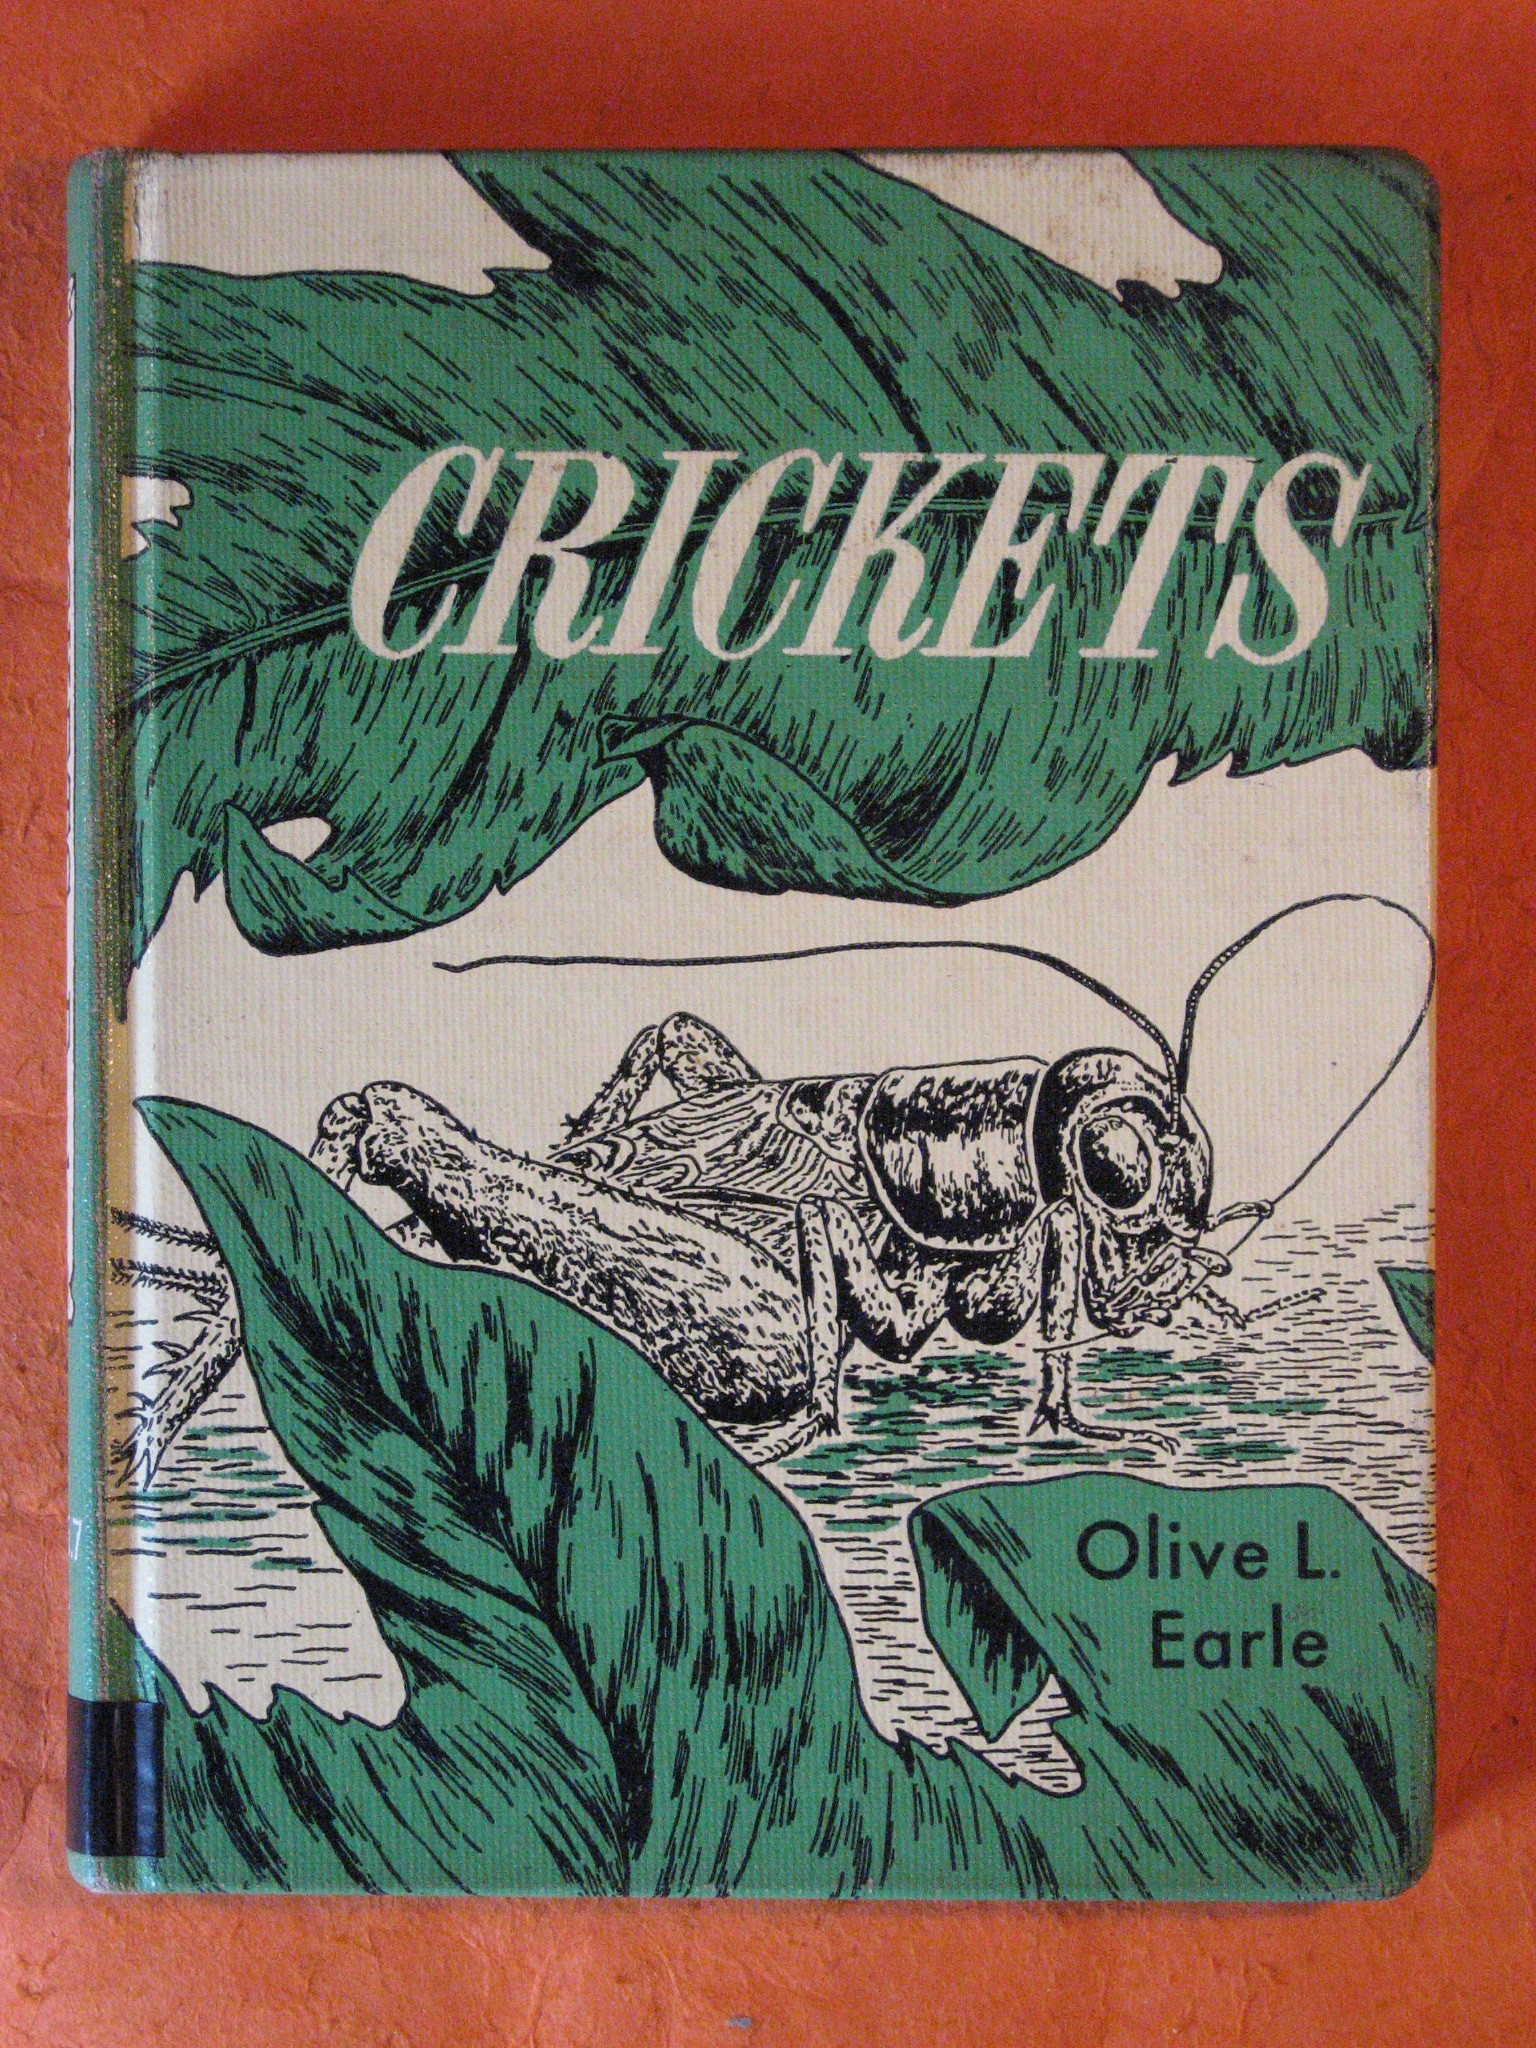 Crickets, Earle, Olive L.